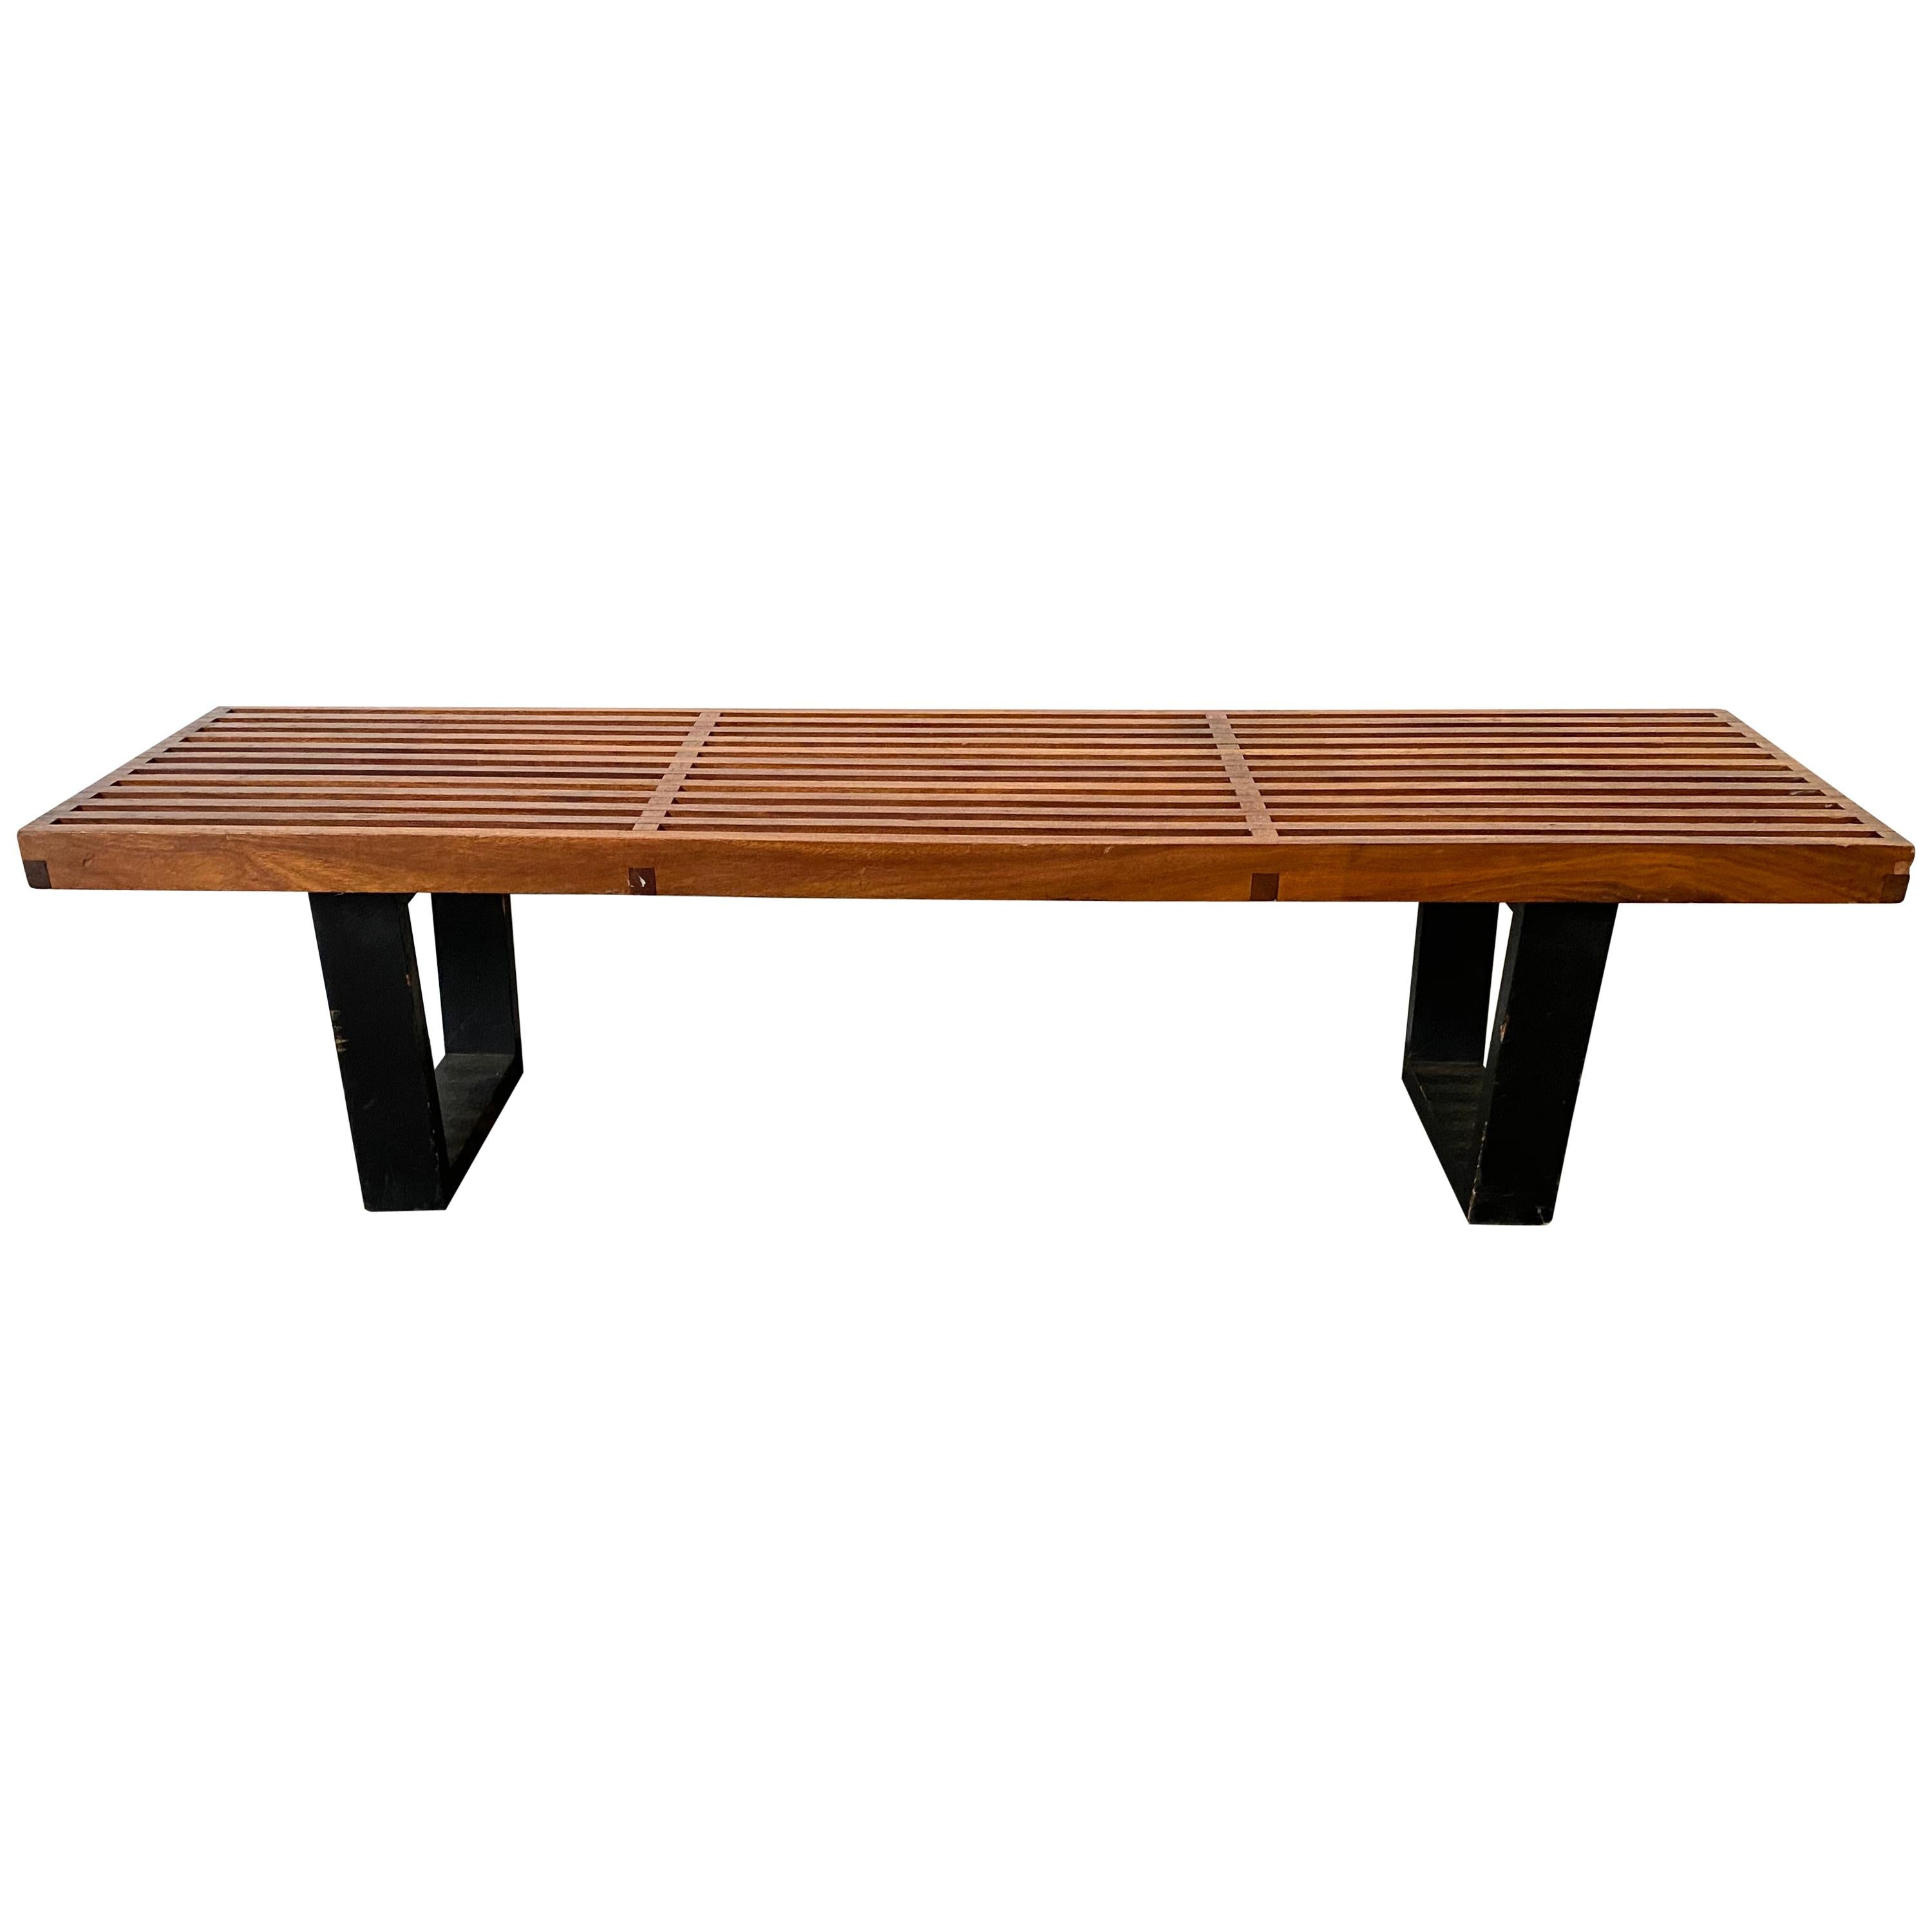 George Nelson Style Slat Bench